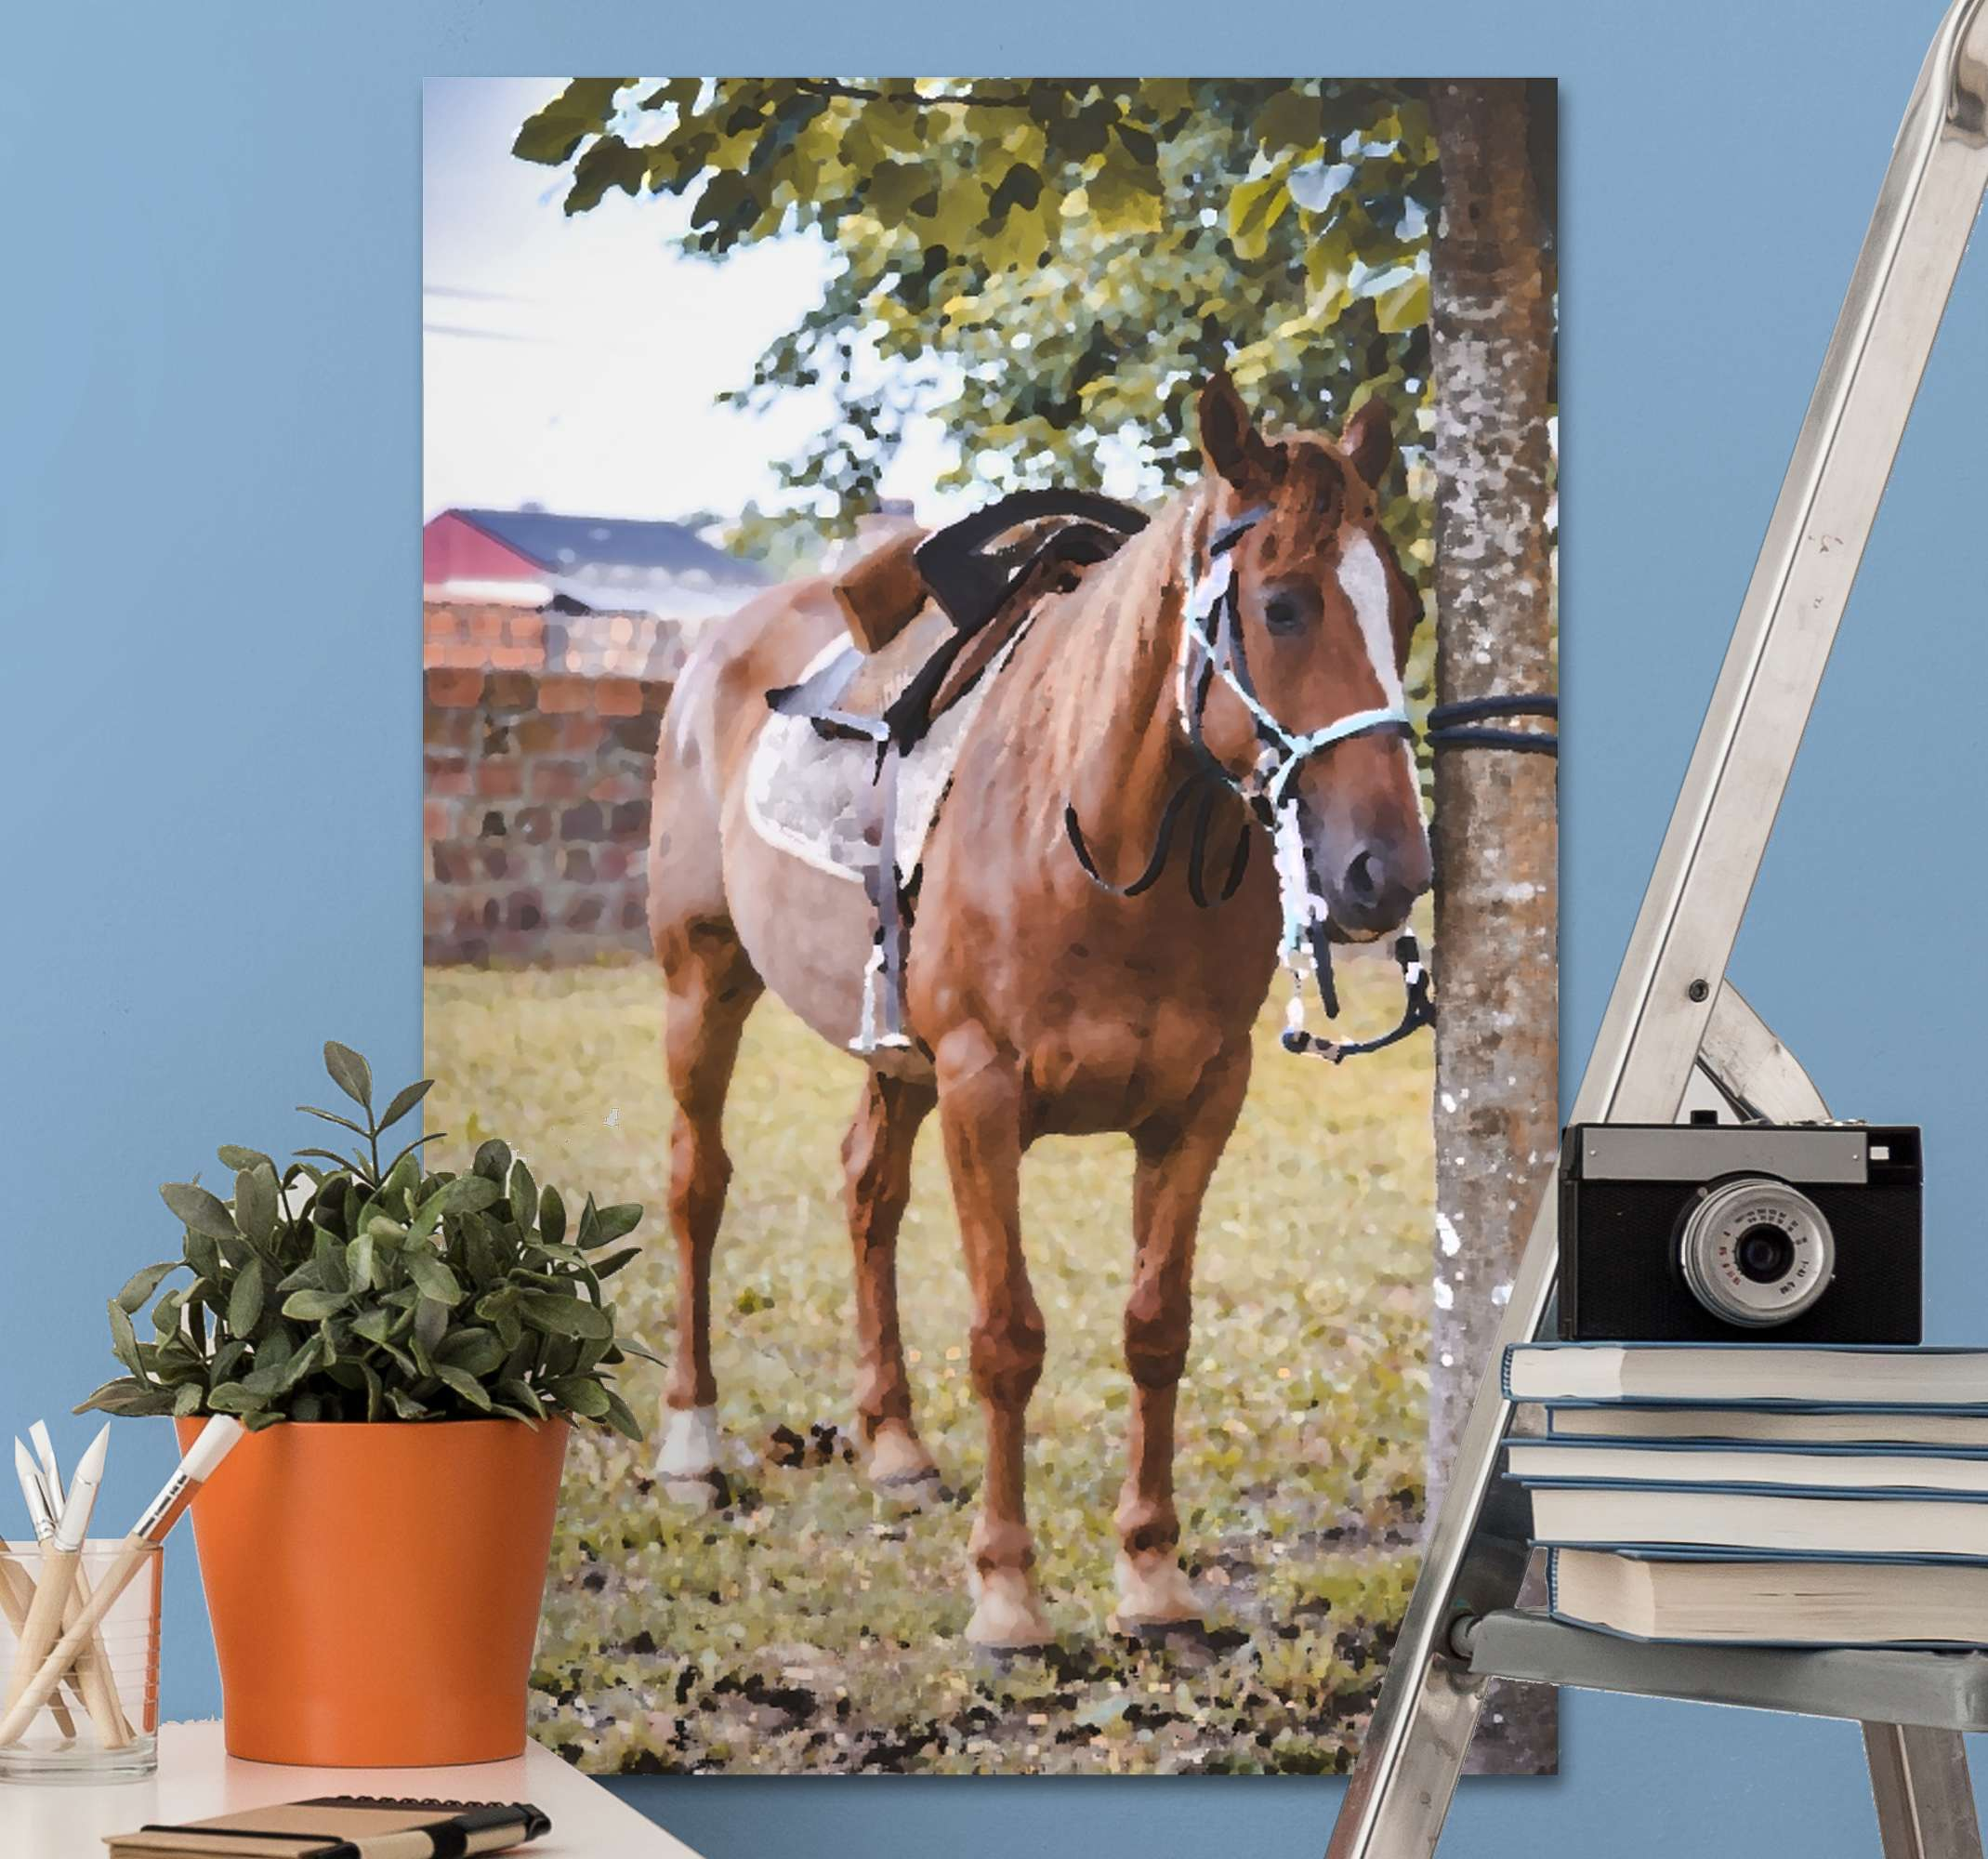 TenStickers. Horse under a tree canvas print. Horse canvas print which features a stunning image of a horse tied to a tree on a farm. Sign up for 10% off. High quality.